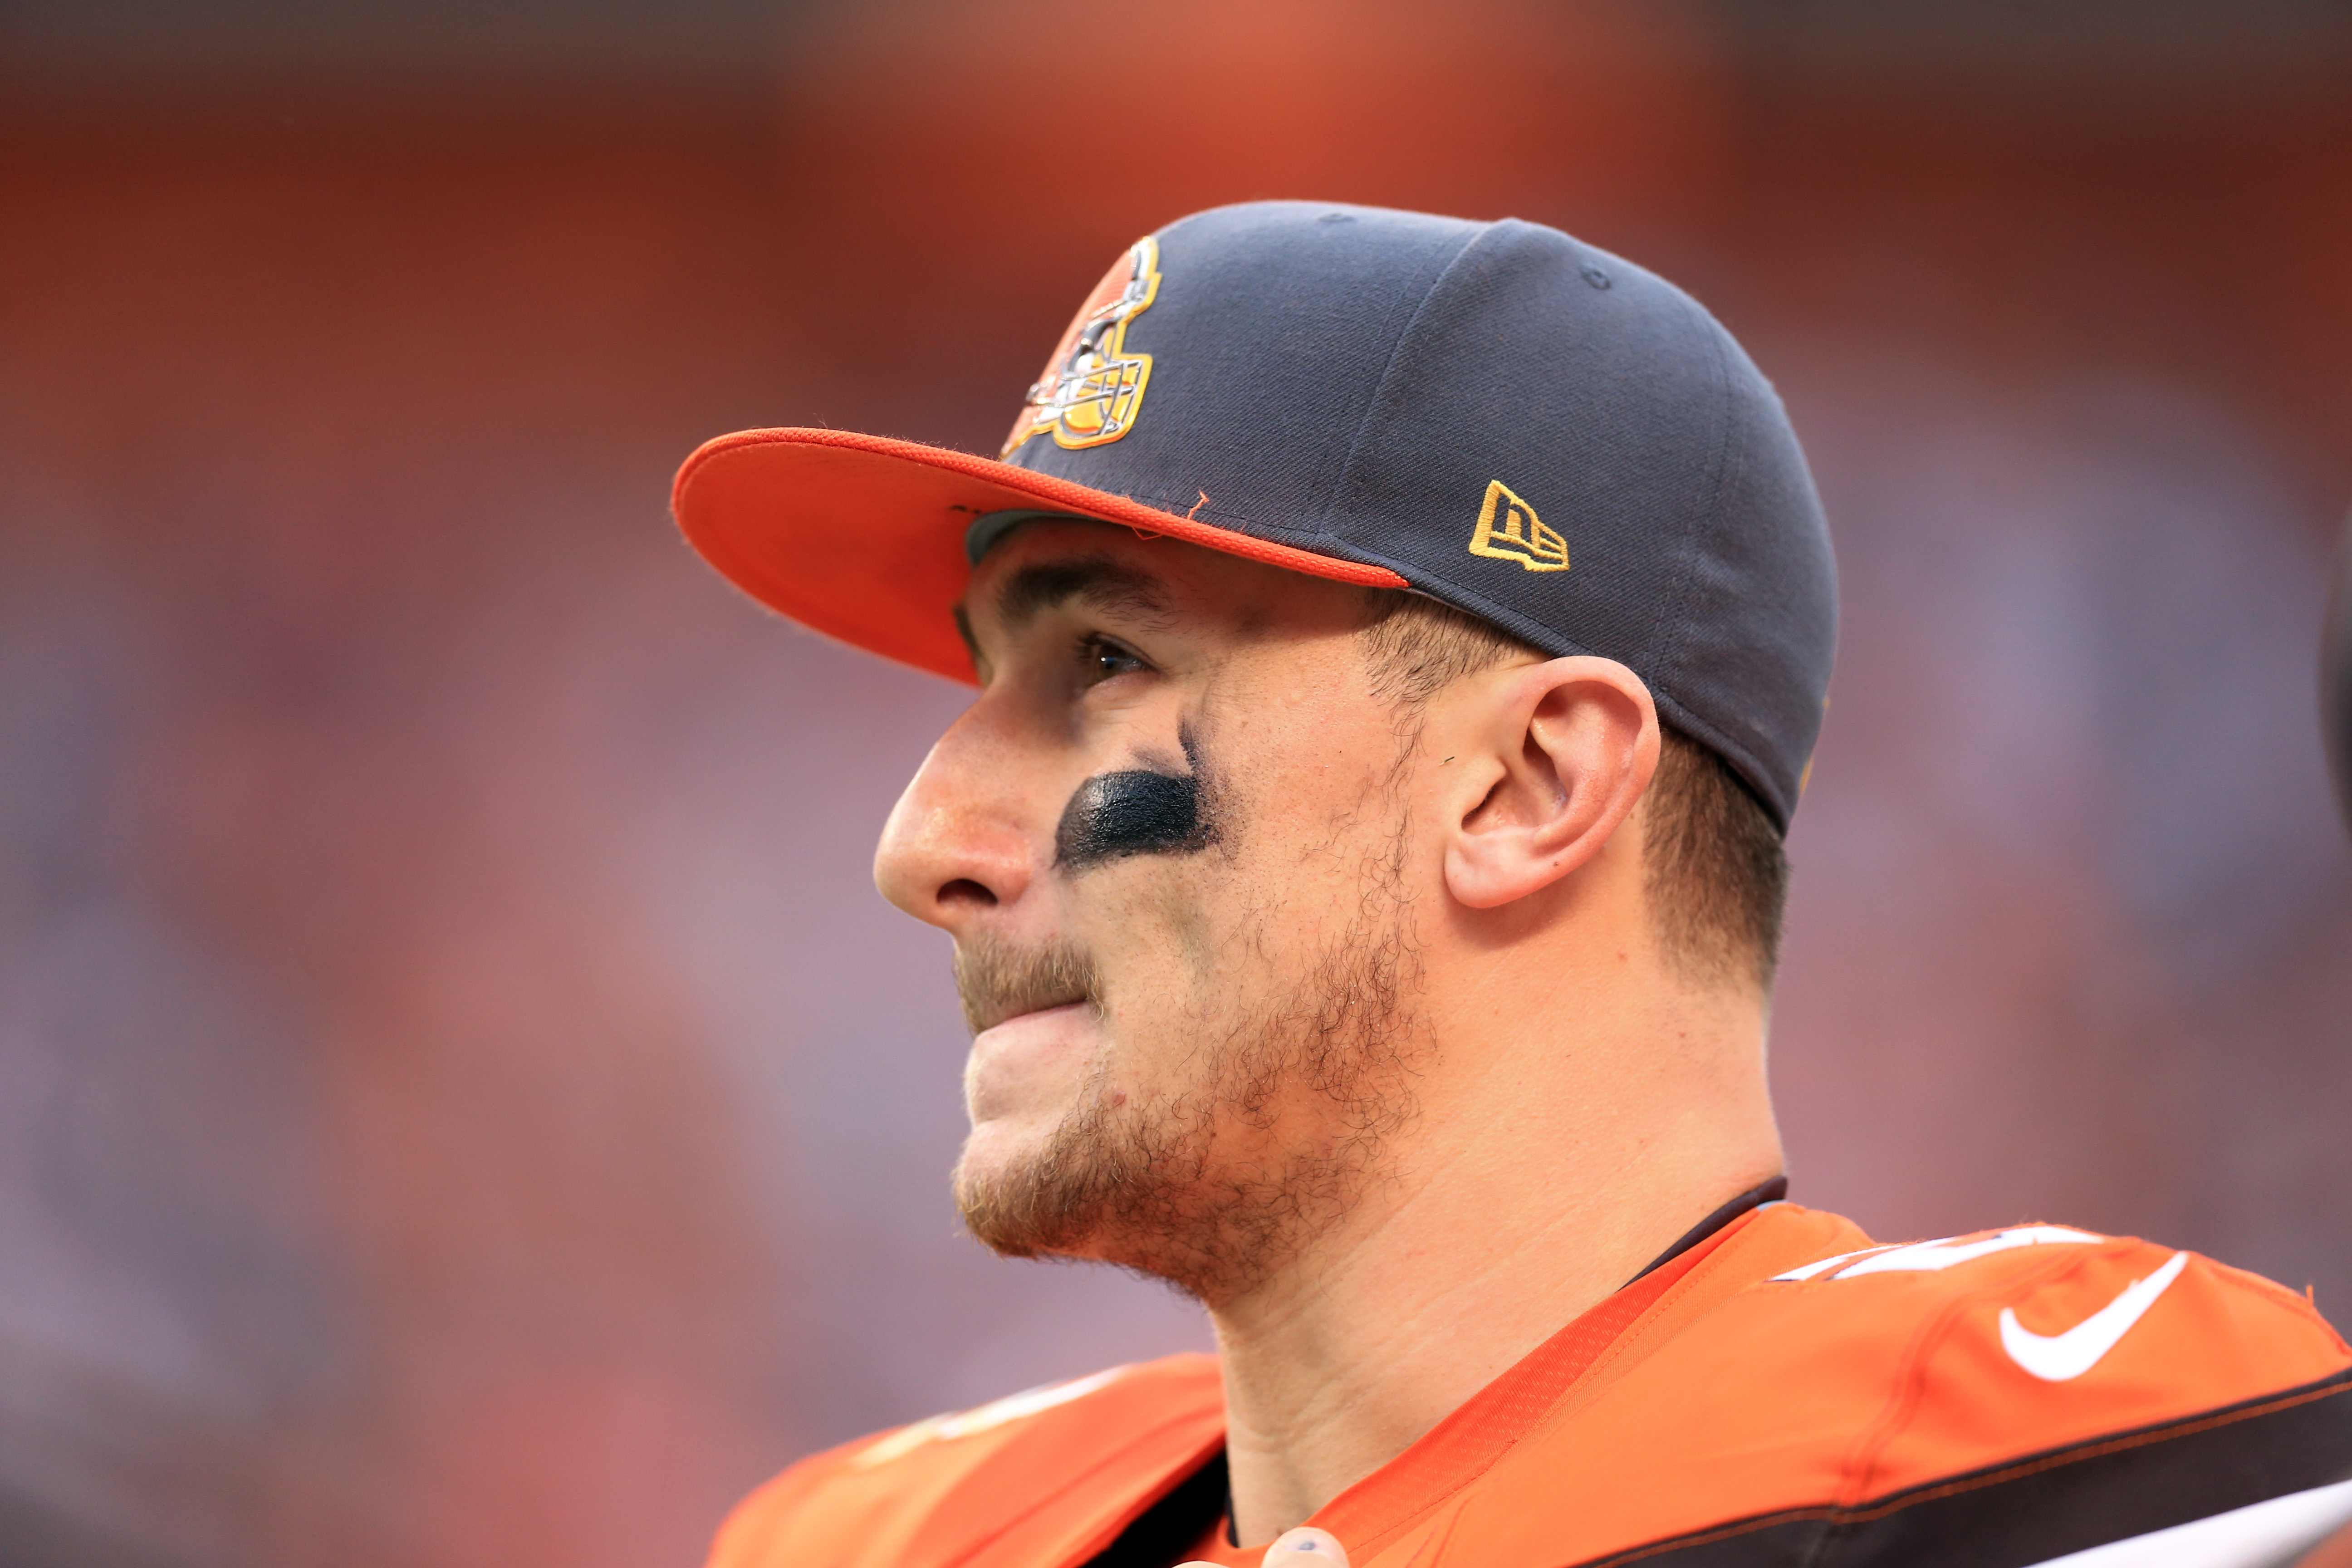 Quarterback Johnny Manziel #2 of the Cleveland Browns on the sidelines during the fourth quarter against the San Francisco 49ers at FirstEnergy Stadium on December 13, 2015 in Cleveland, Ohio.